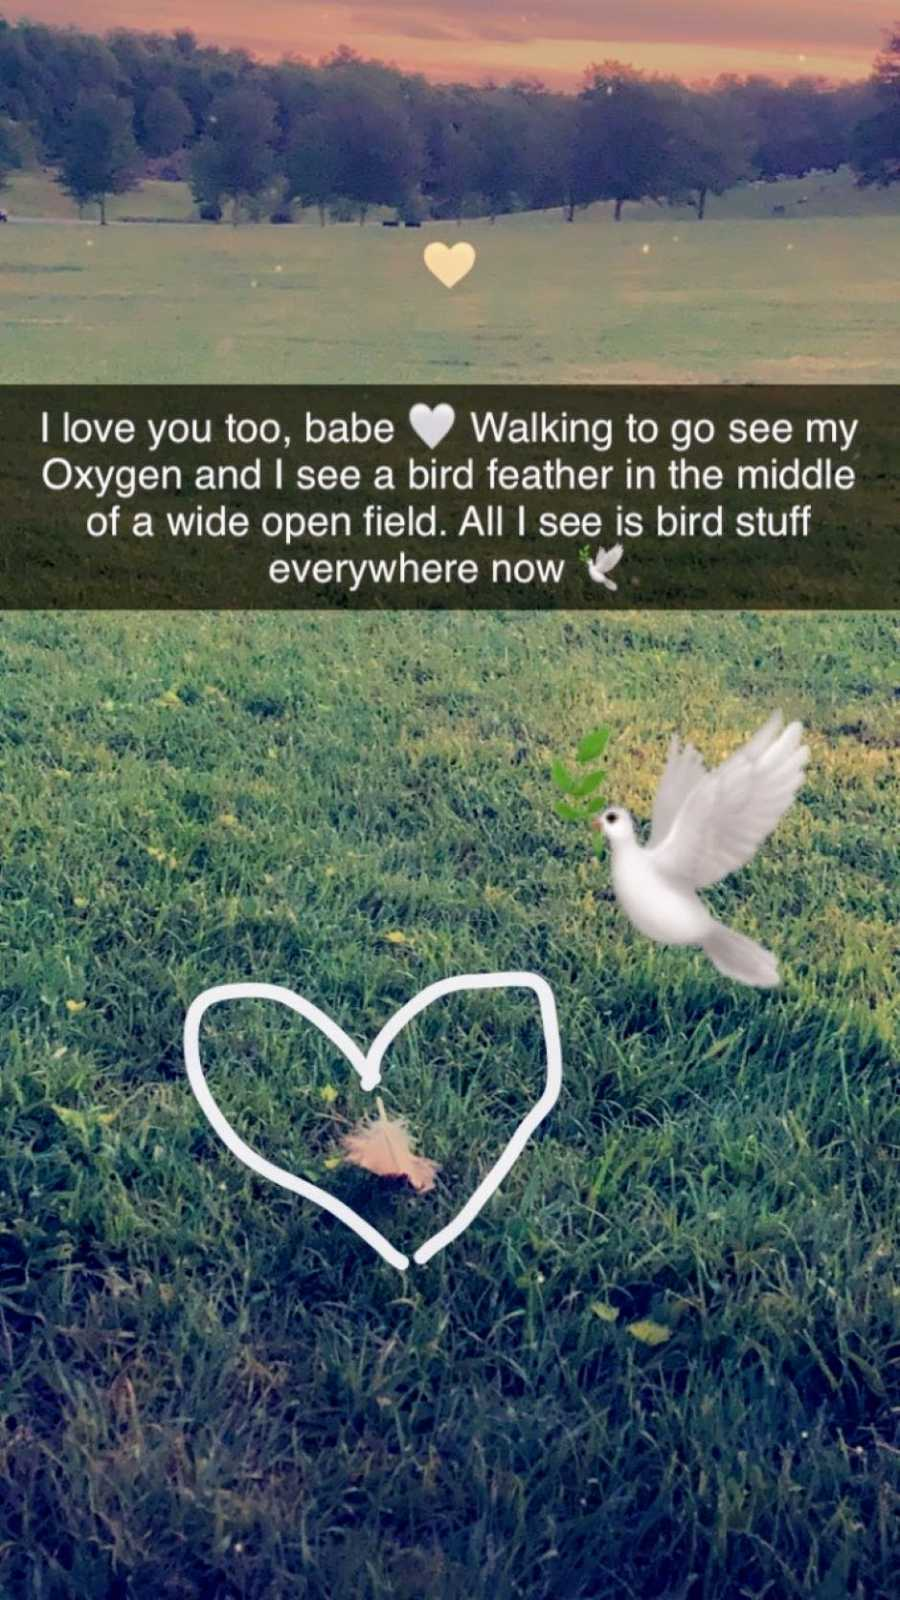 Woman snaps a photo of a bird feather, a wink from heaven from her late boyfriend